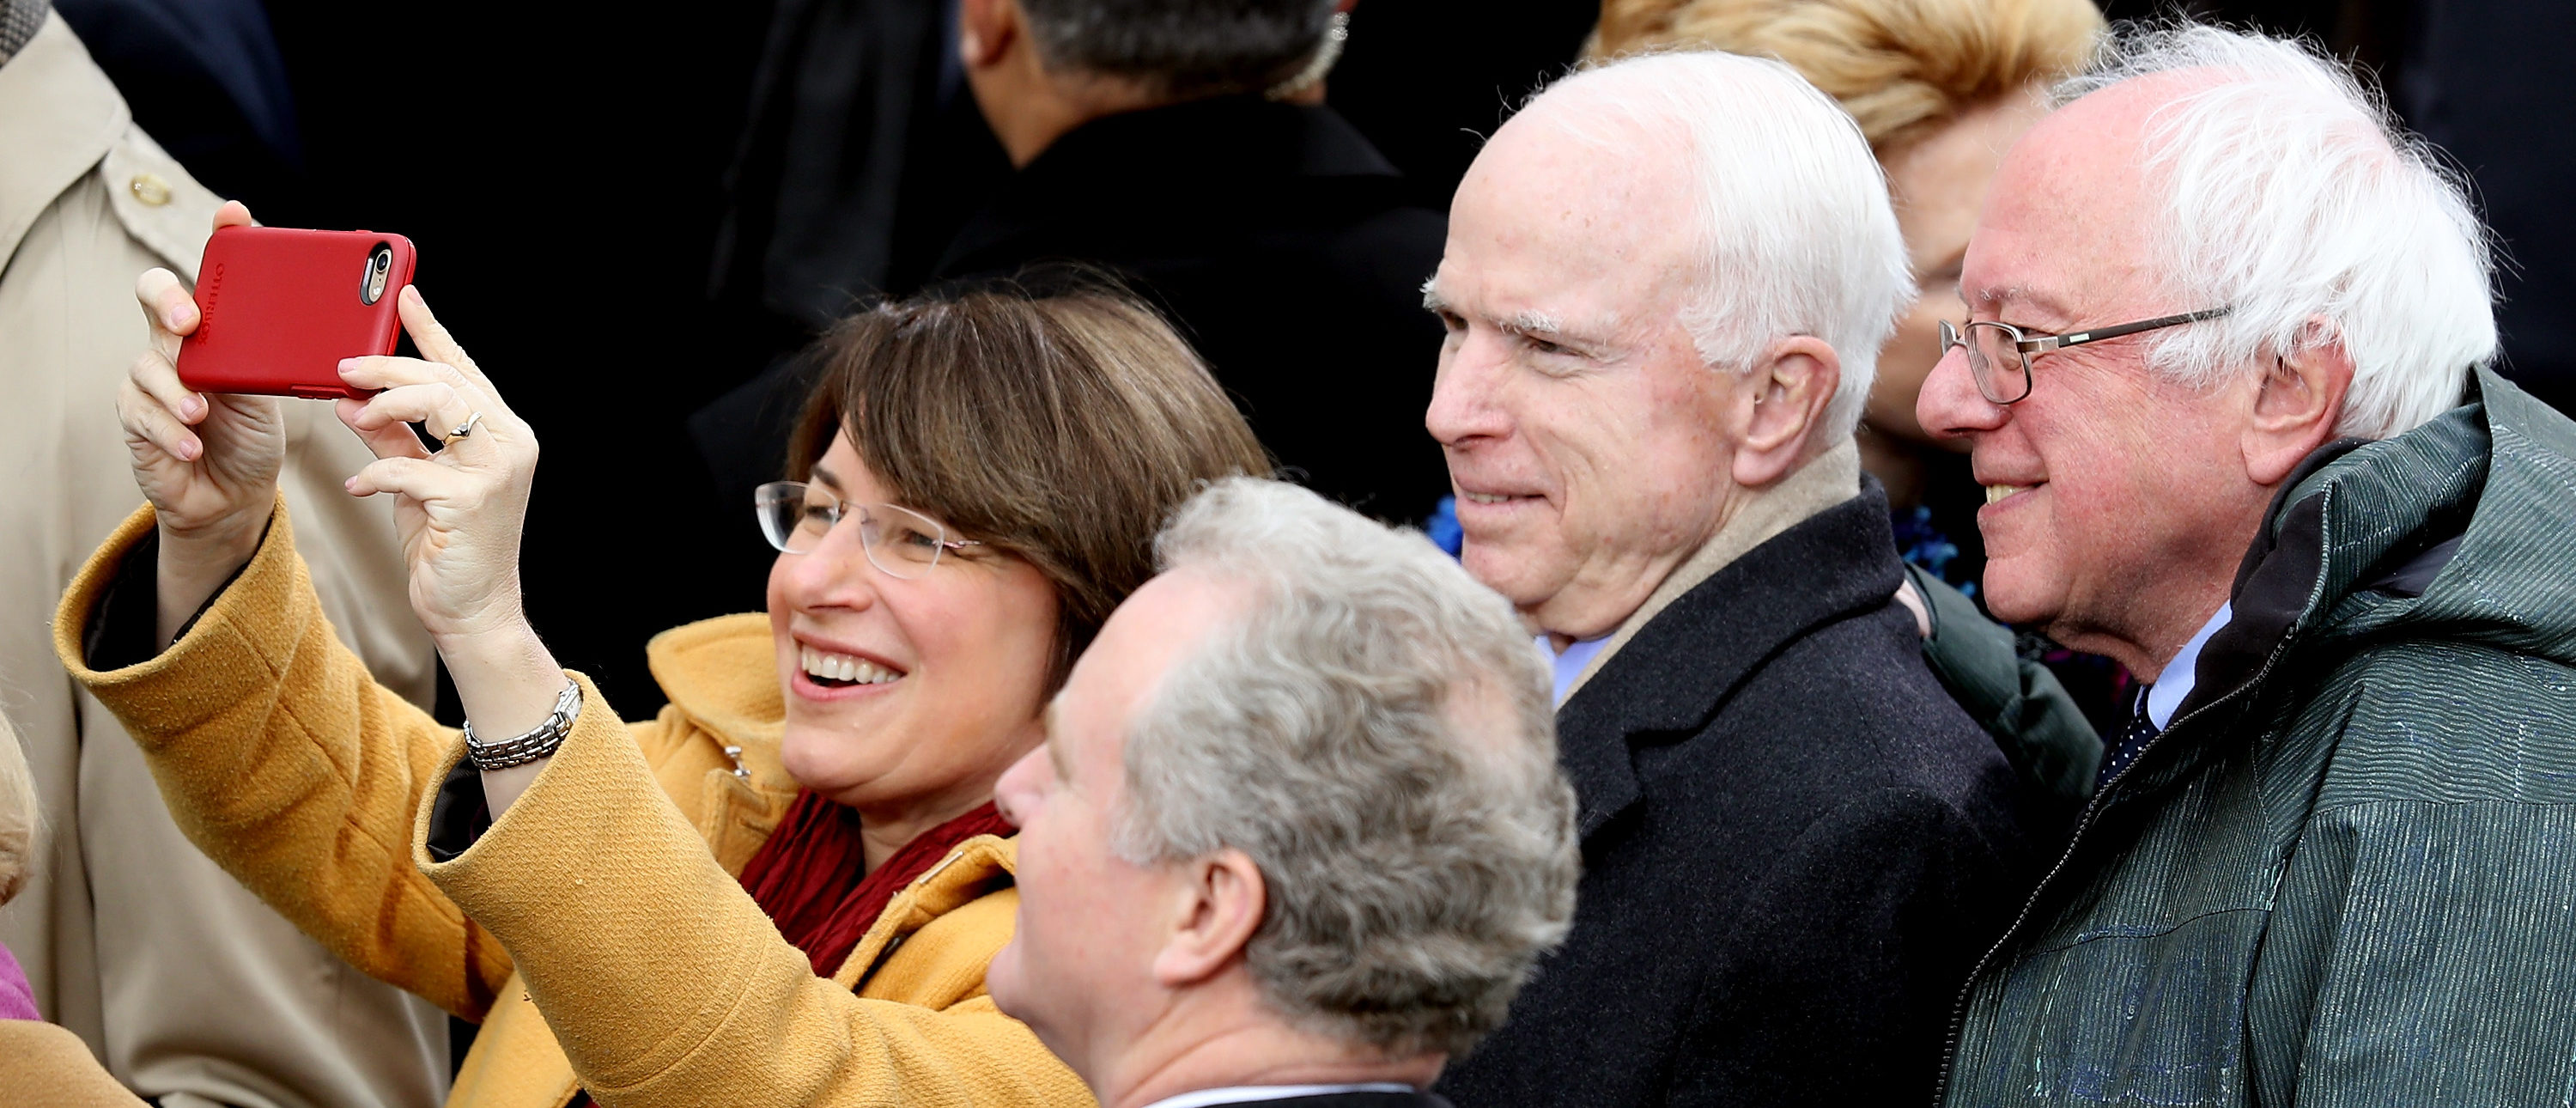 Here's What Klobuchar Said McCain 'Kept Reciting' During Trump's Inauguration